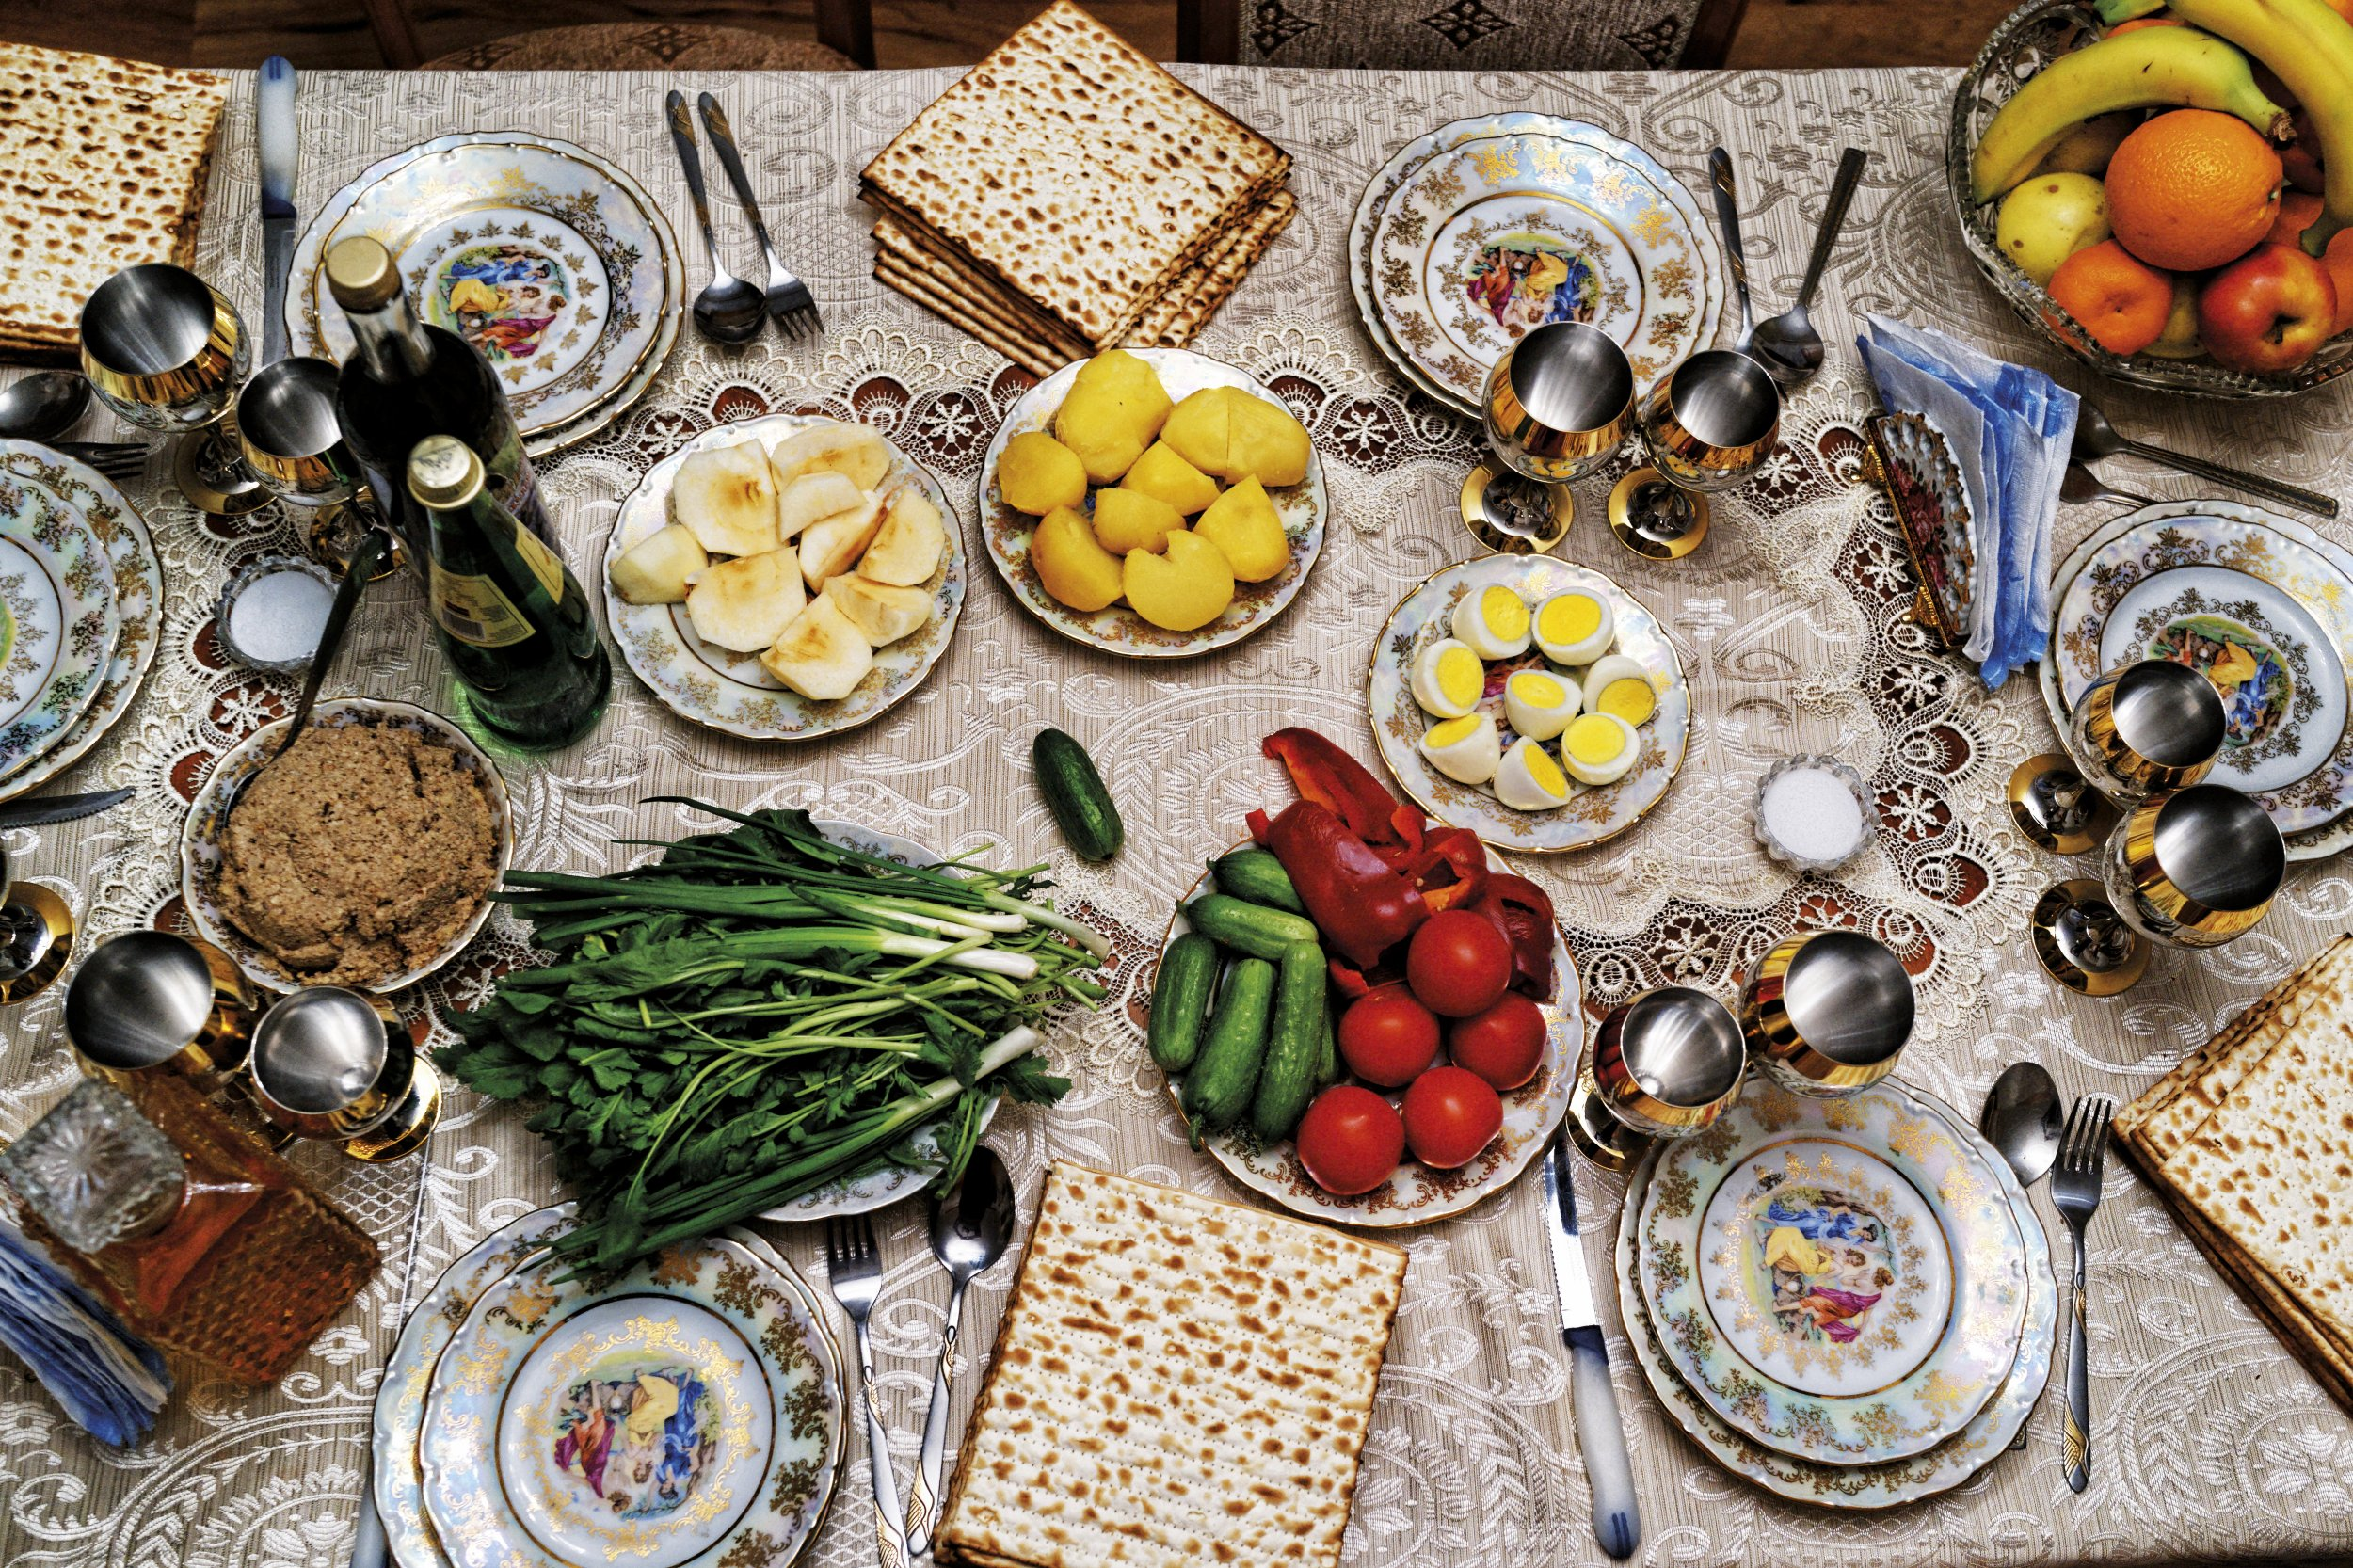 When Is Passover 2019? Jewish Holiday Tells The Story of